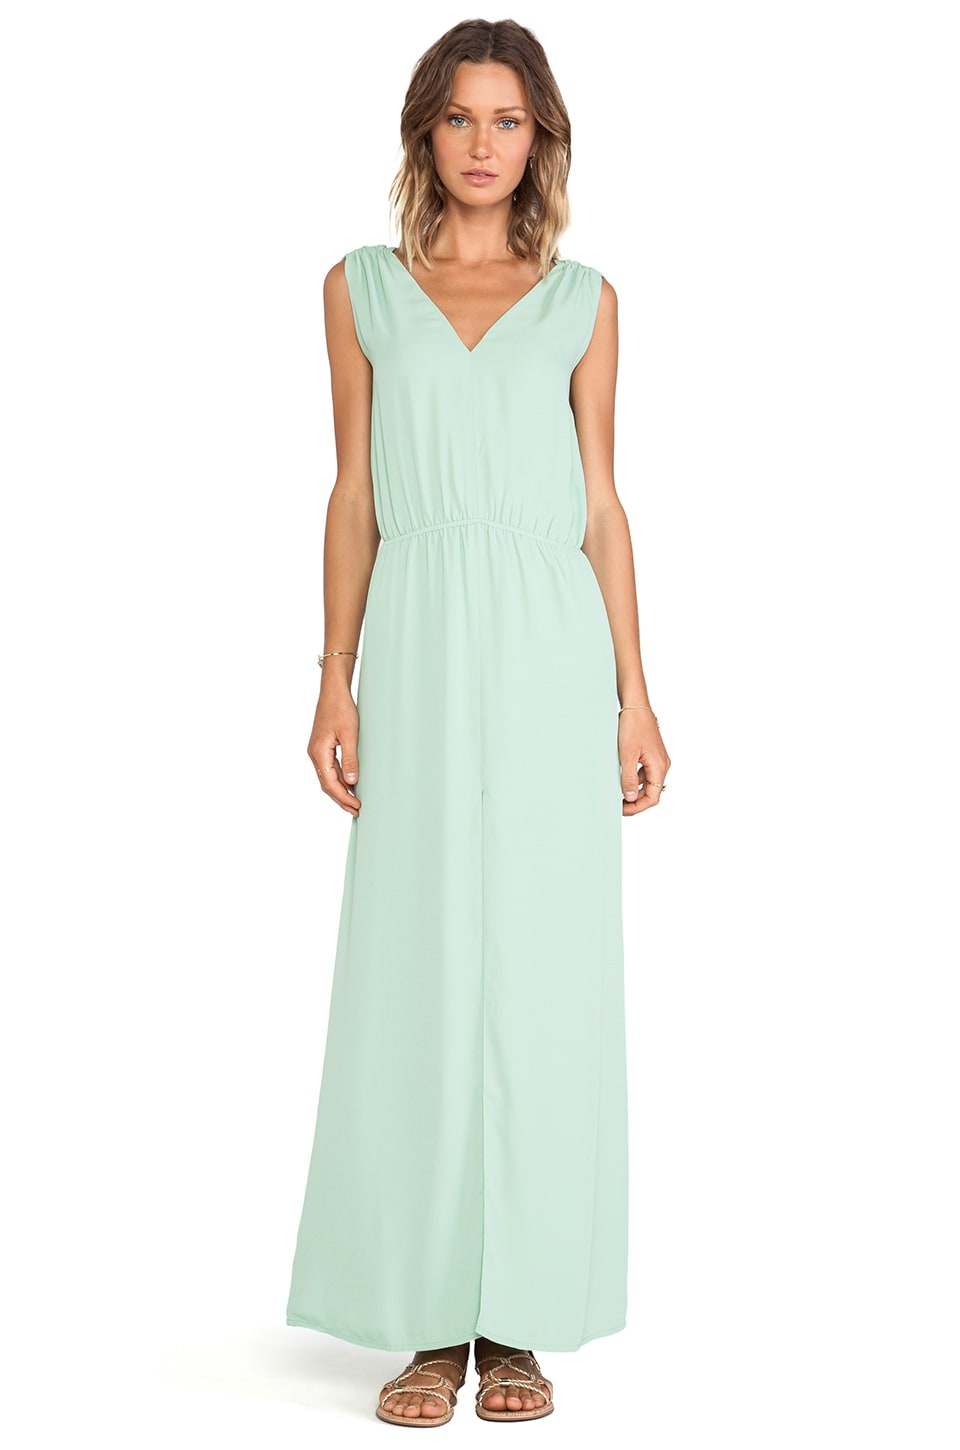 BLAQUE LABEL Maxi Dress in Seafoam